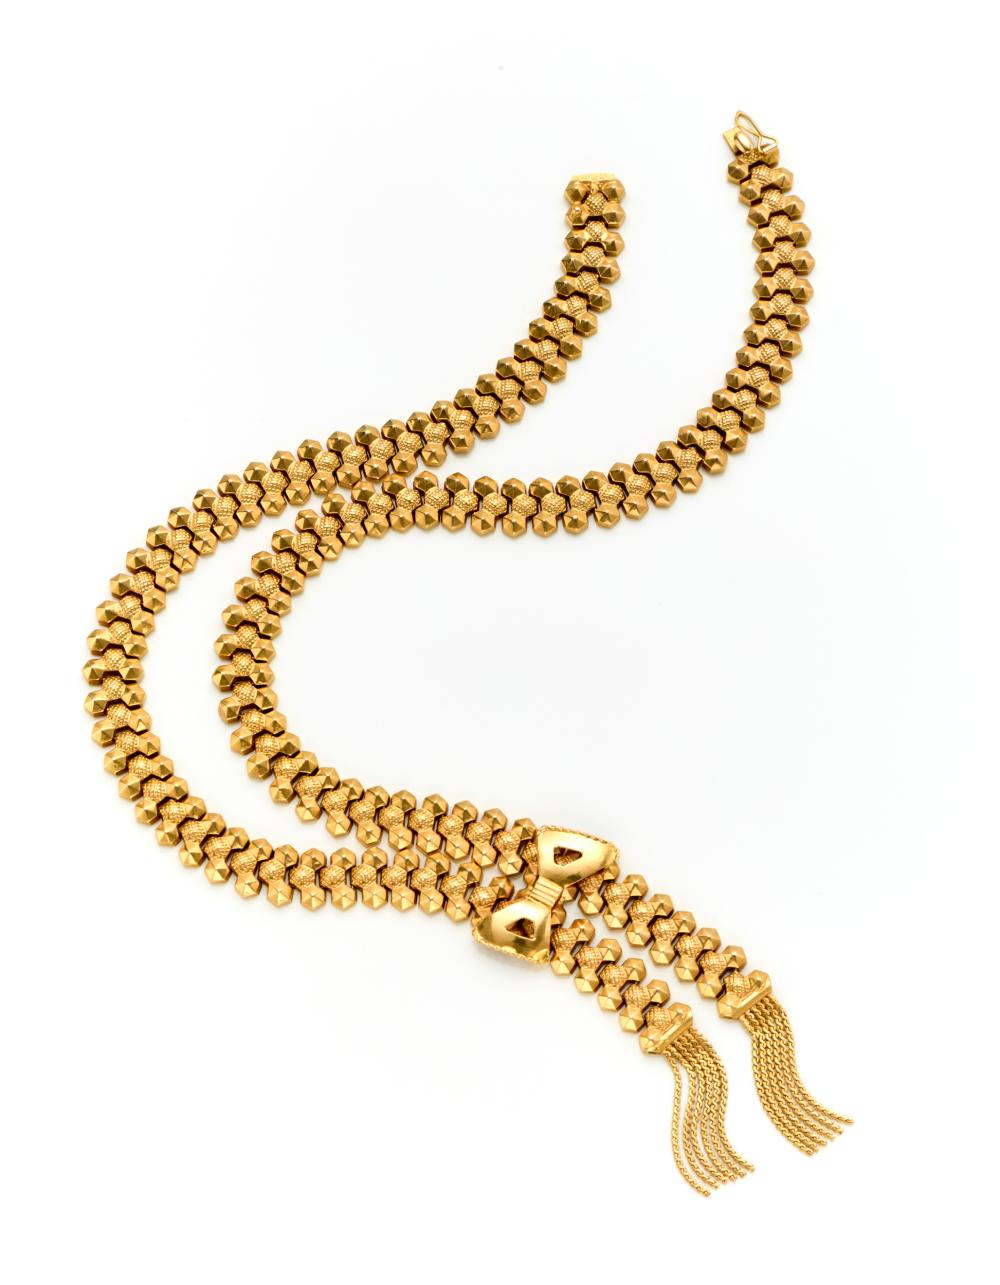 FOB Yellow gold necklace with a central pendant held by a bow and finished with tassels, g 44.55 circa, length cm 45 circa. Signed and marked Fob, 3 VI. (slight defects)...